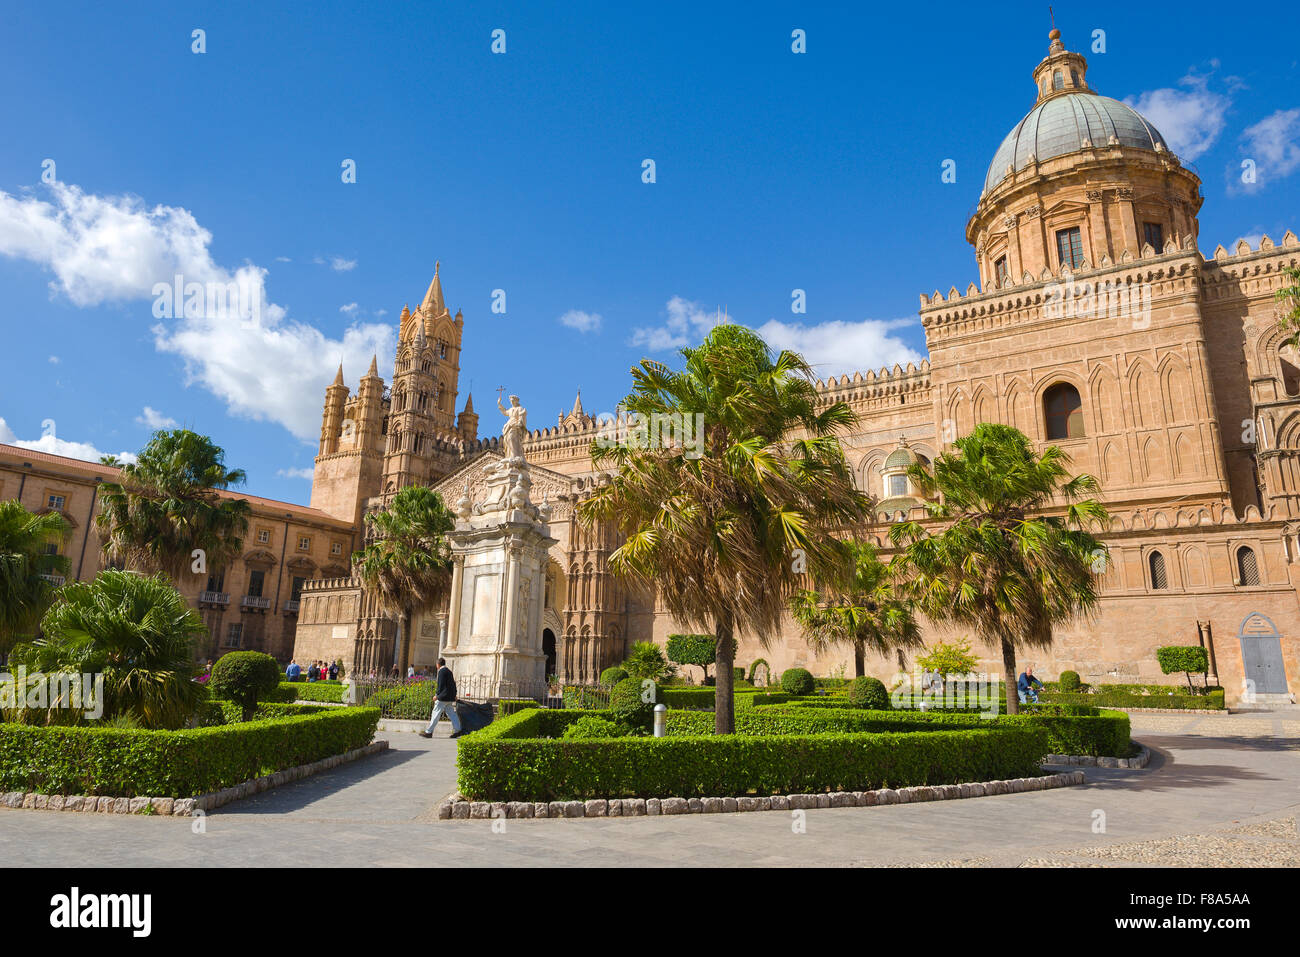 Palermo Cathedral, view of the 12th century cathedral (Cattedrale Metropolitana della Santa Vergine Maria Assunta) - Stock Image